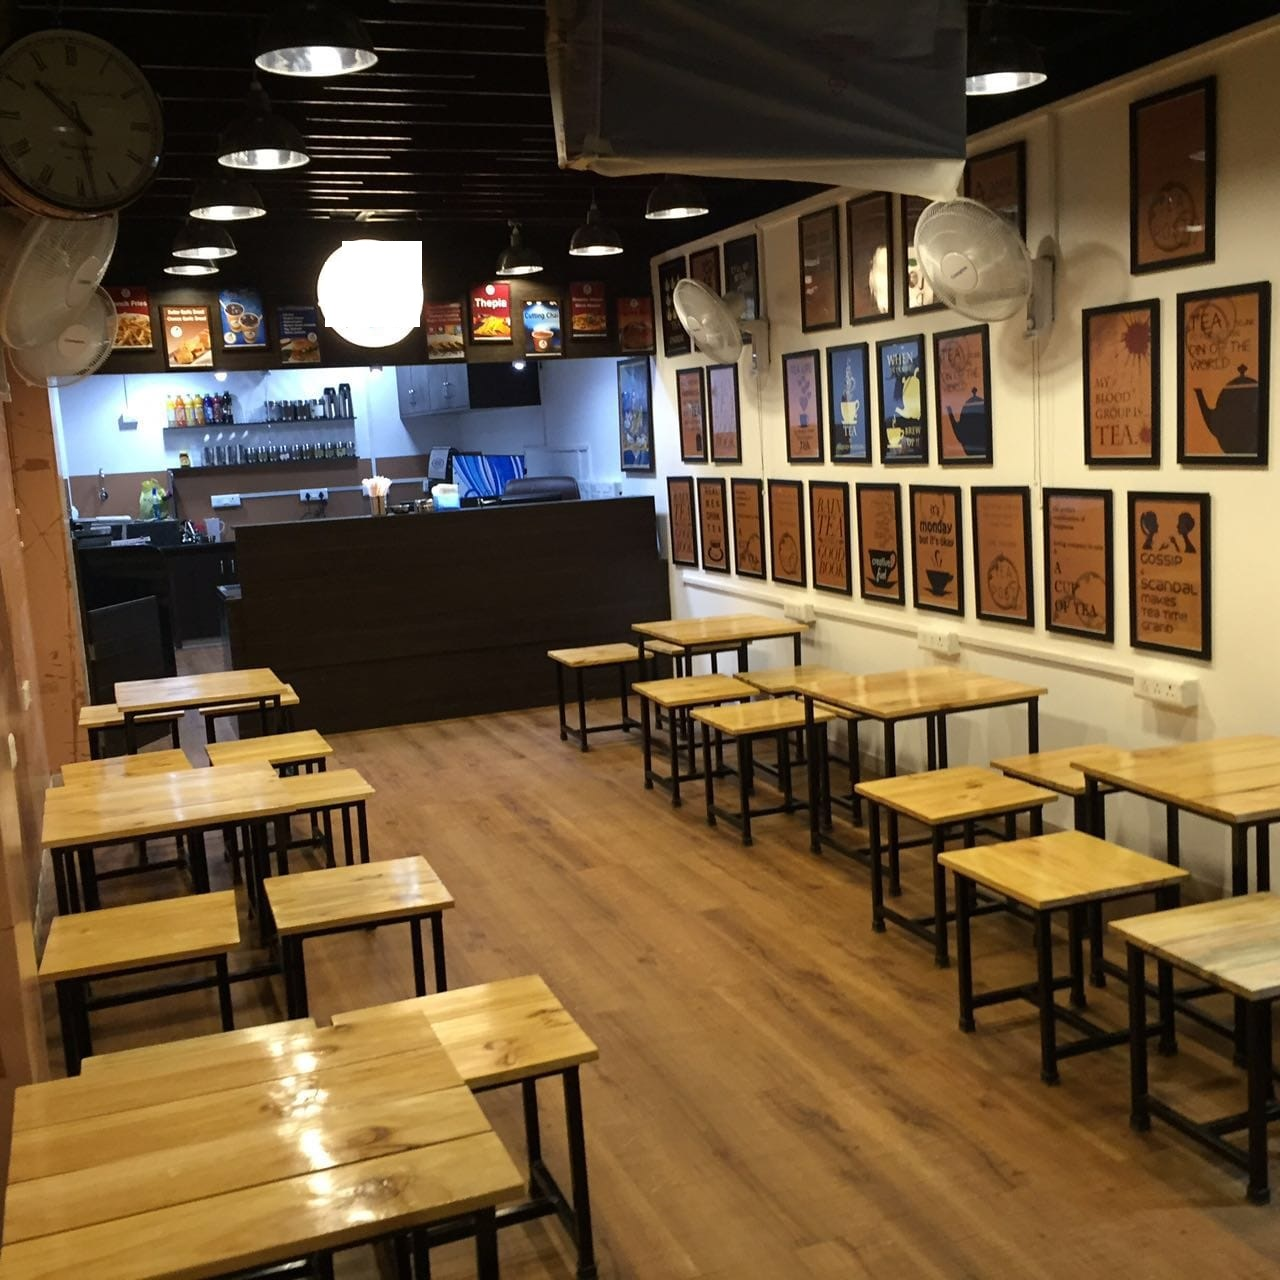 Running and Profitable franchise Cafe is looking for an exit